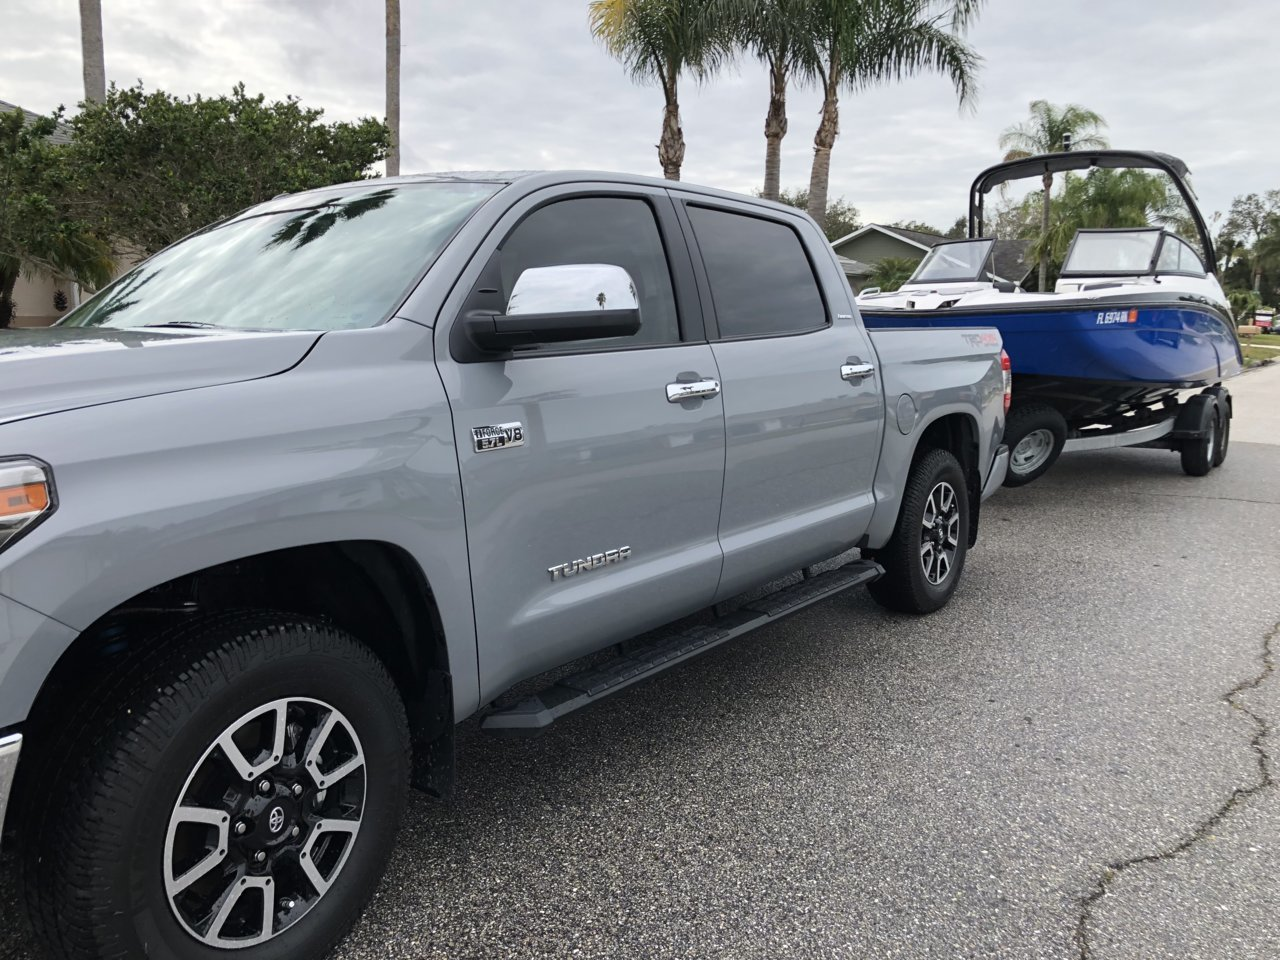 What Do You Tow With Your Tundra Page 27 Toyota Forum Equalizer Weight Distribution W 4point Sway Control No Shank 479cd4dd 8e89 41d0 B85d 74f51bc2dfe1